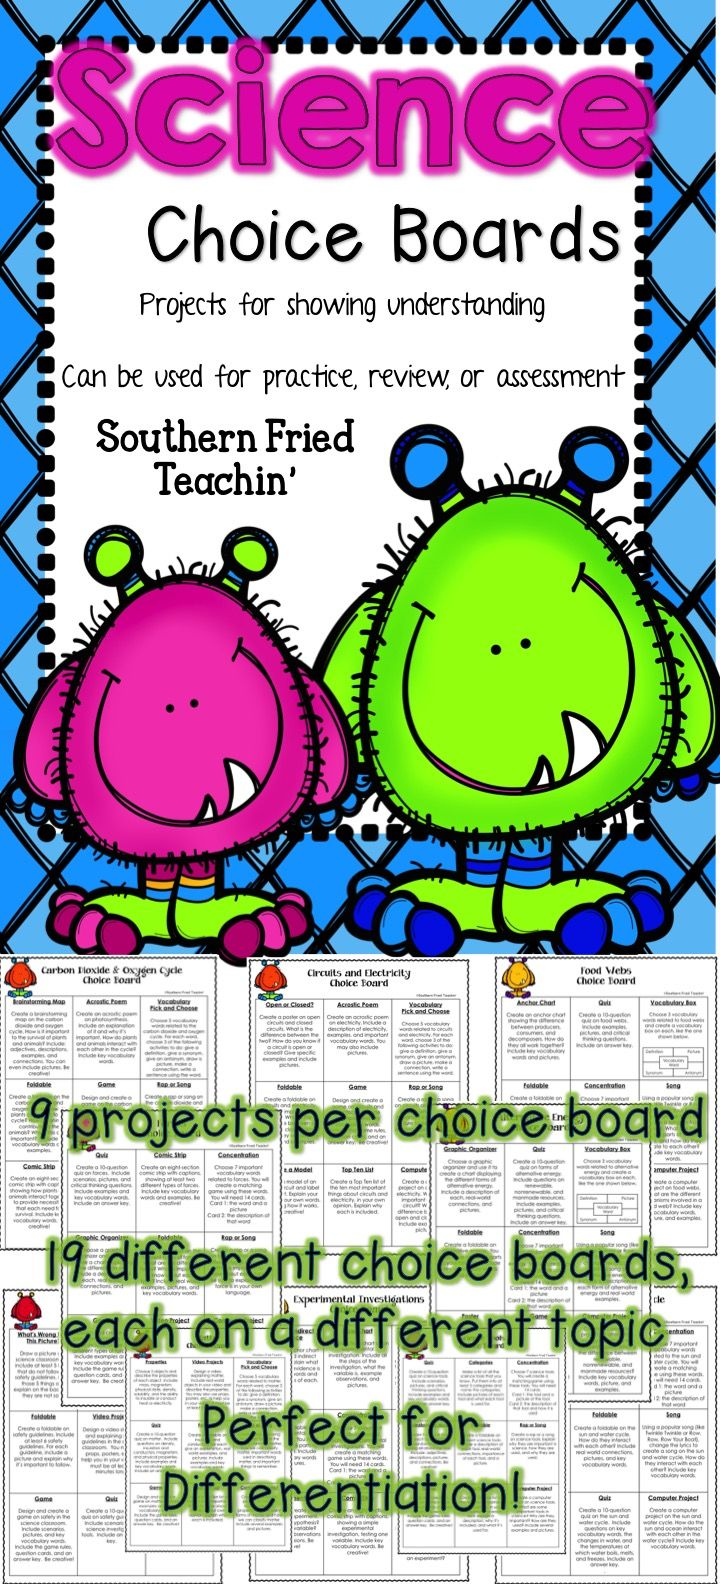 Students love to be able to make choices in their learning. So, why not let them! Science Choice Boards are a great tool to use in your science classroom because they allow for differentiation along with choice. Students are encouraged to think critically and creatively through the use of Choice Boards.